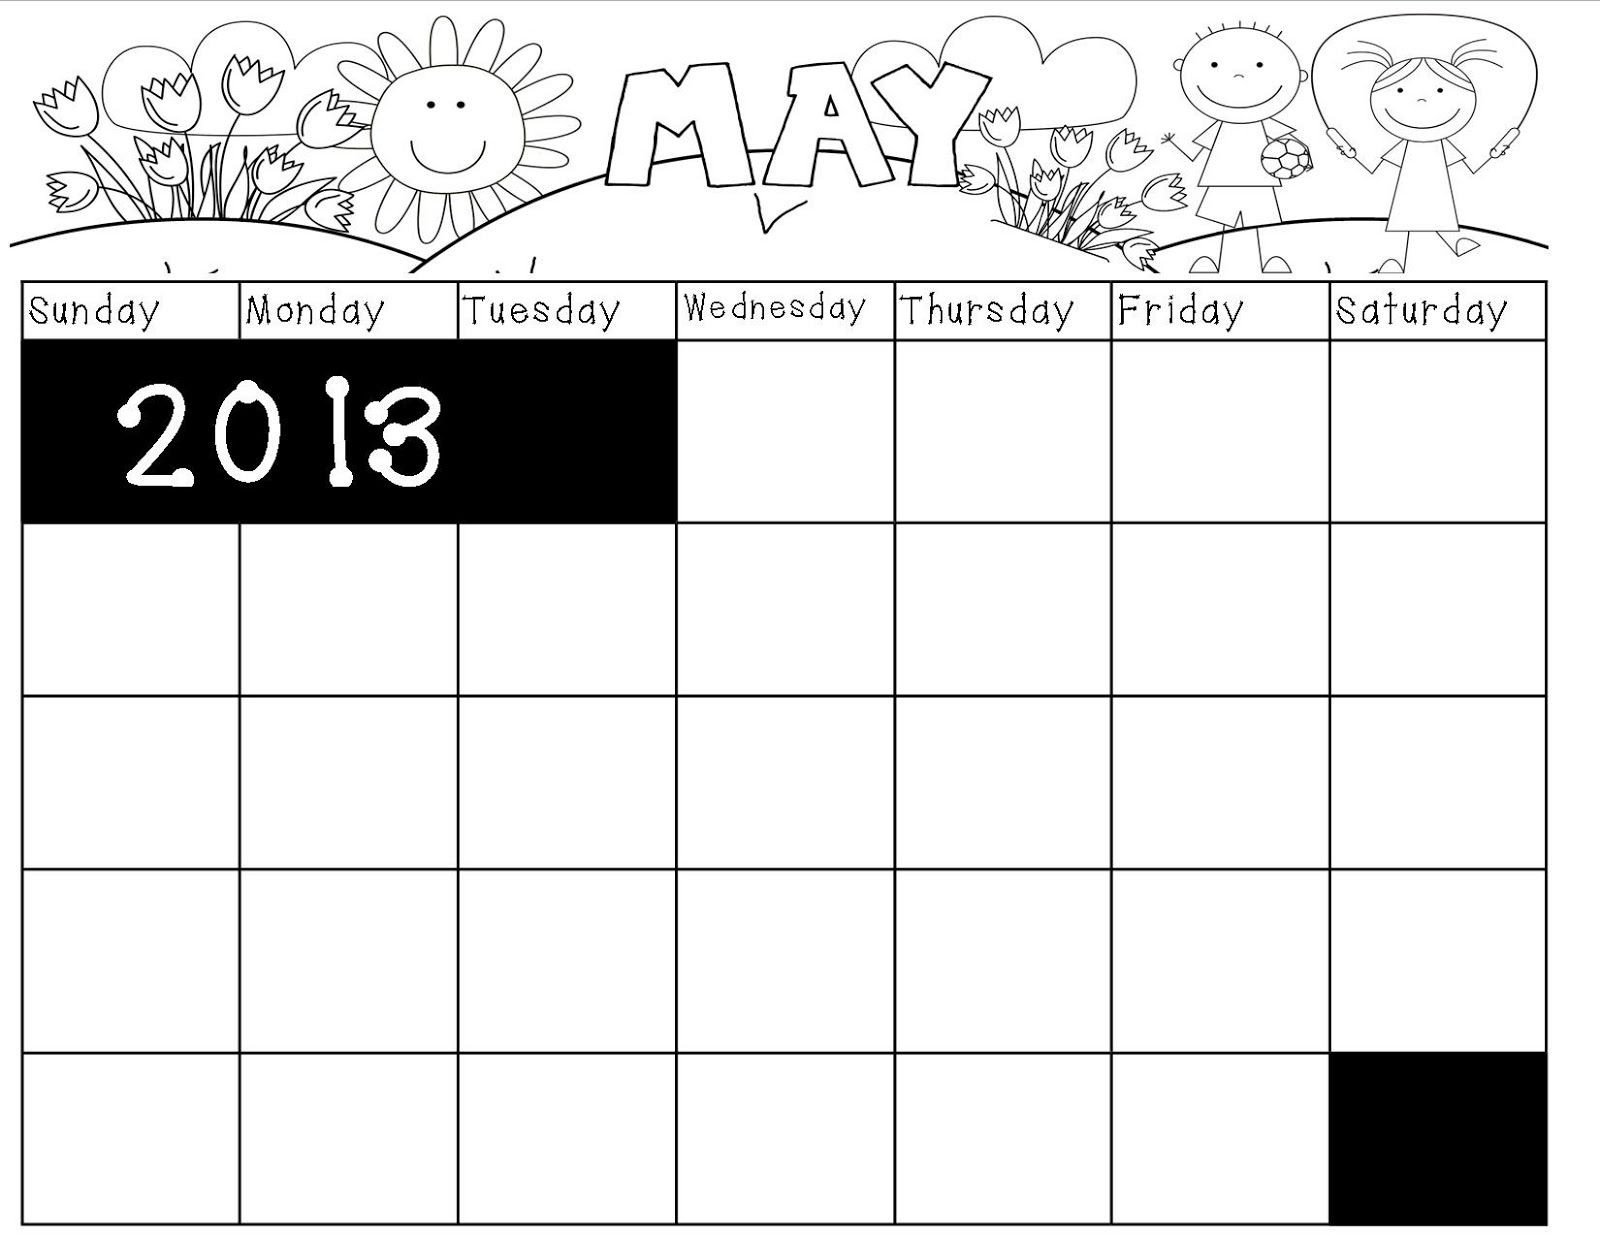 Calendar Worksheet for Kindergarten Worksheet Free Math Practice Worksheets November Calendar